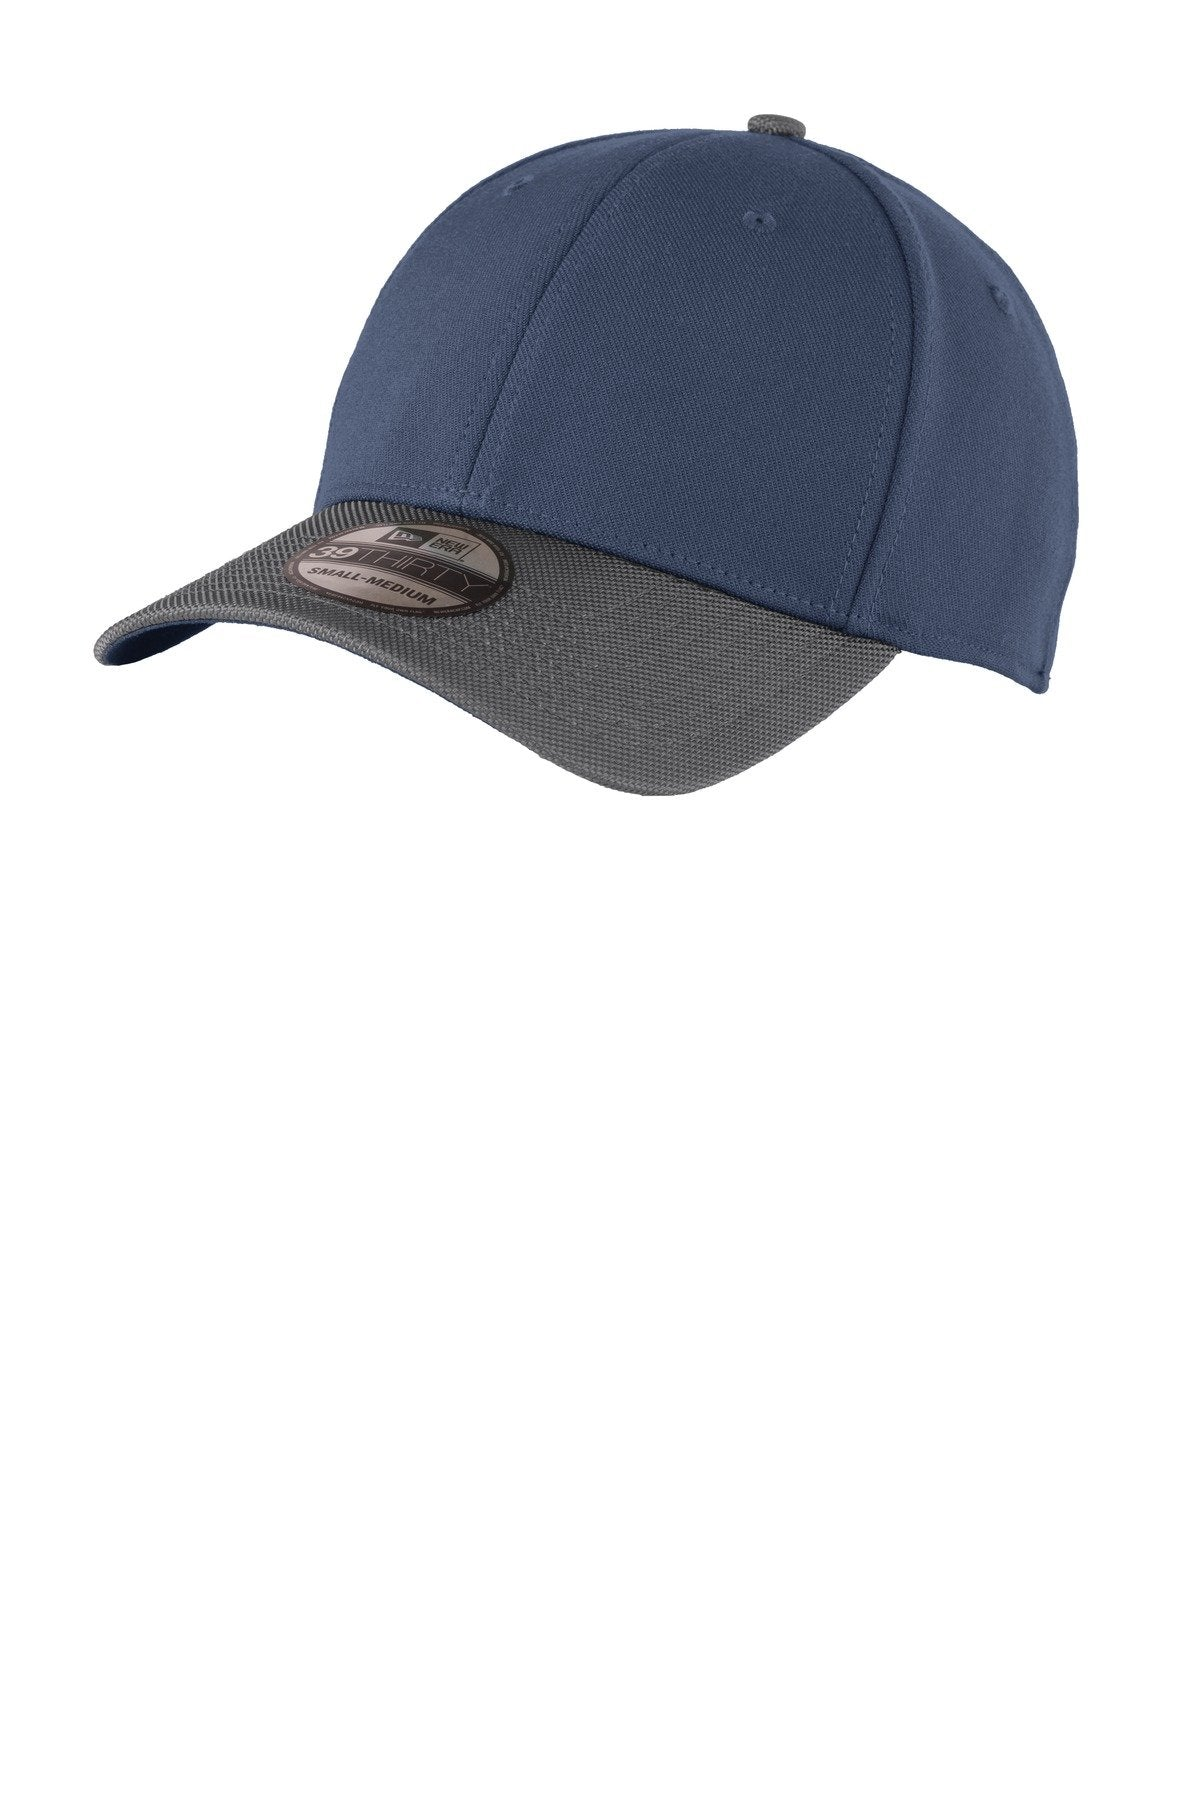 League Navy/ Charcoal - New Era NE701